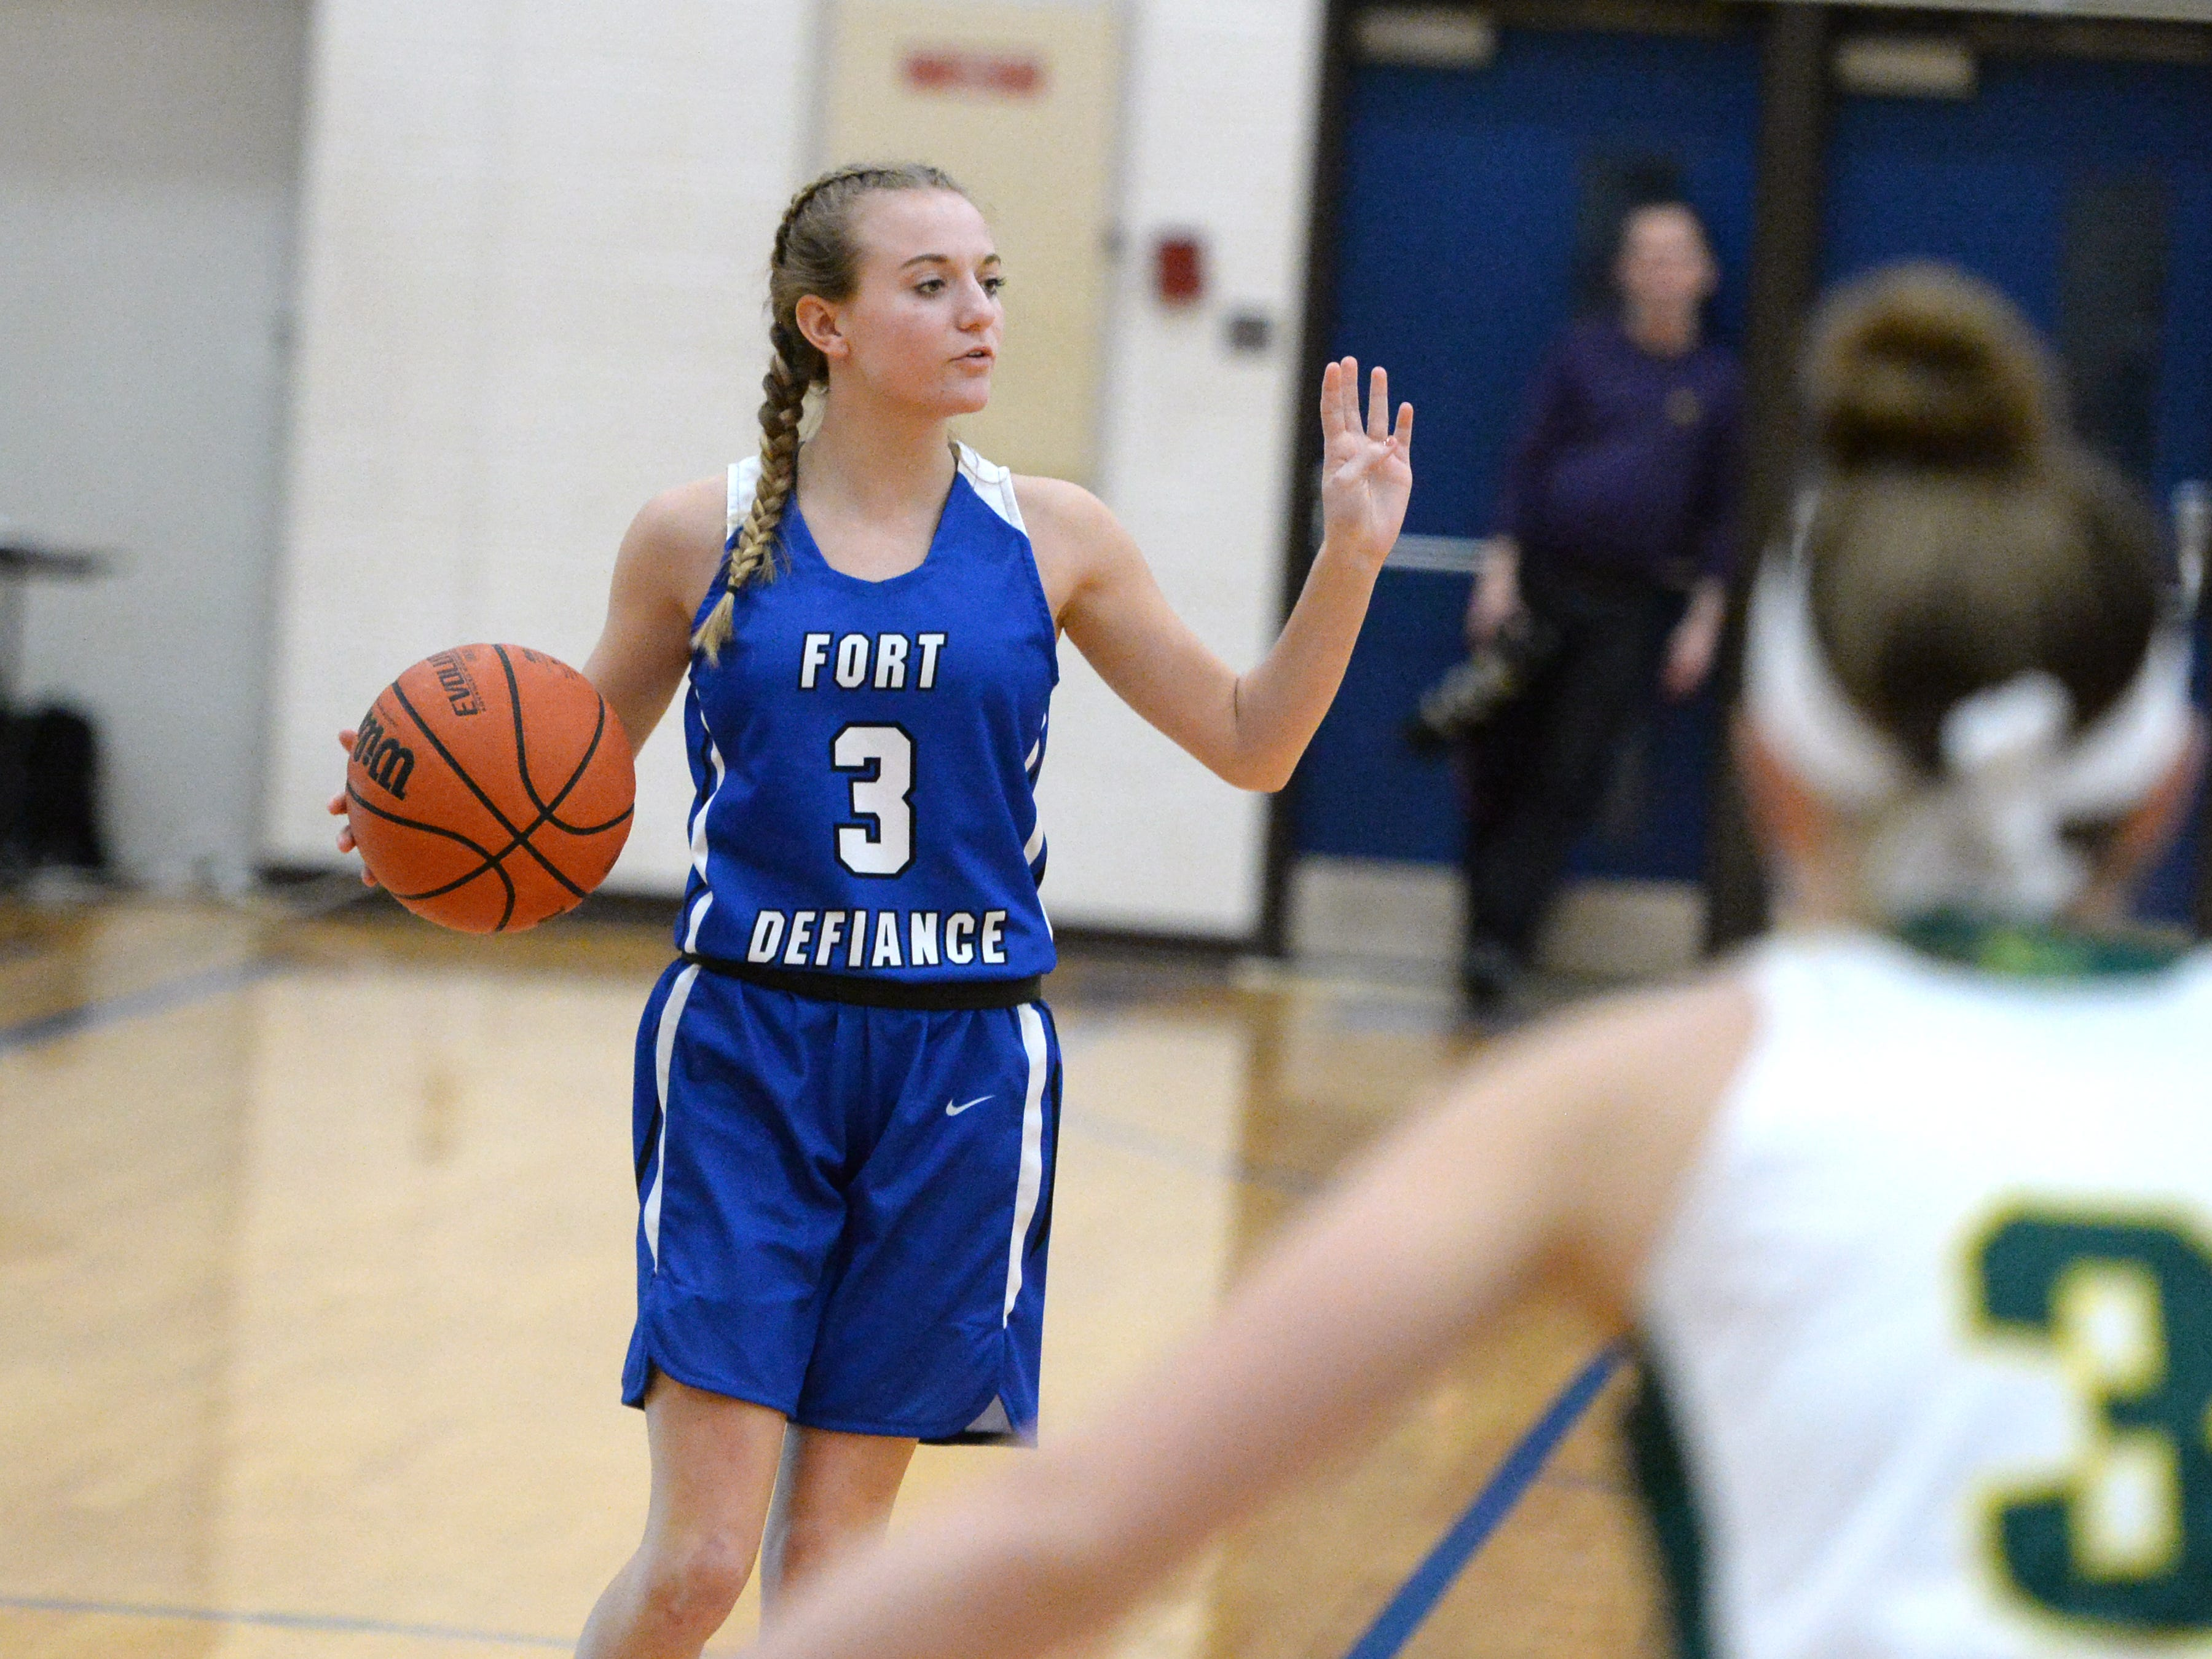 Fort Defiance's MaKayla Kershner brings the ball up court Saturday at the Play of Preemies Showcase at Western Albemarle High School.